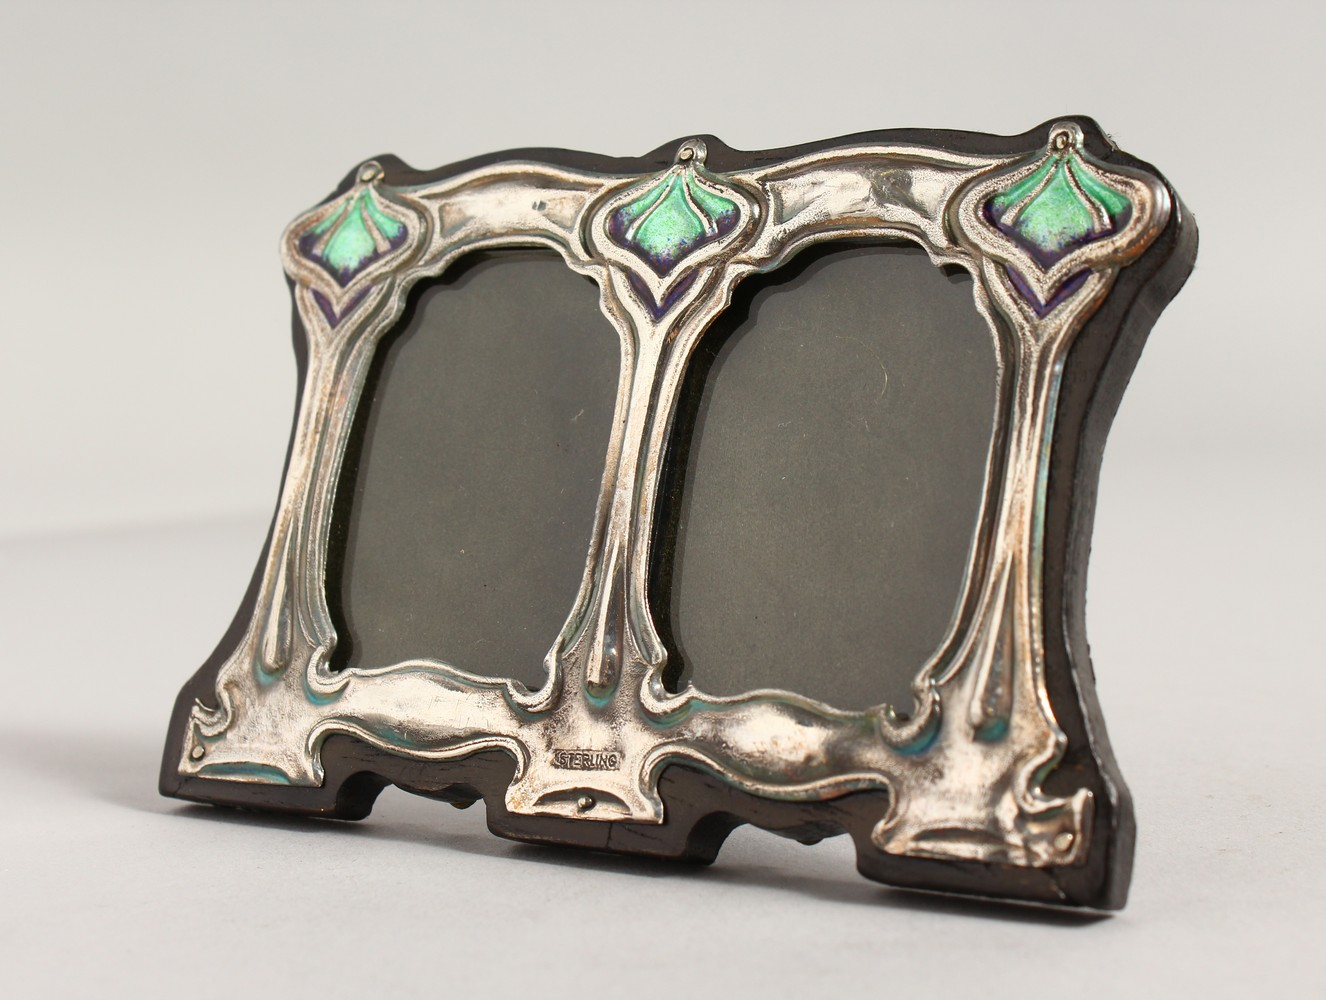 Lot 1864 - A SILVER AND ENAMEL ART DECO STYLE PHOTOGRAPH FRAME.